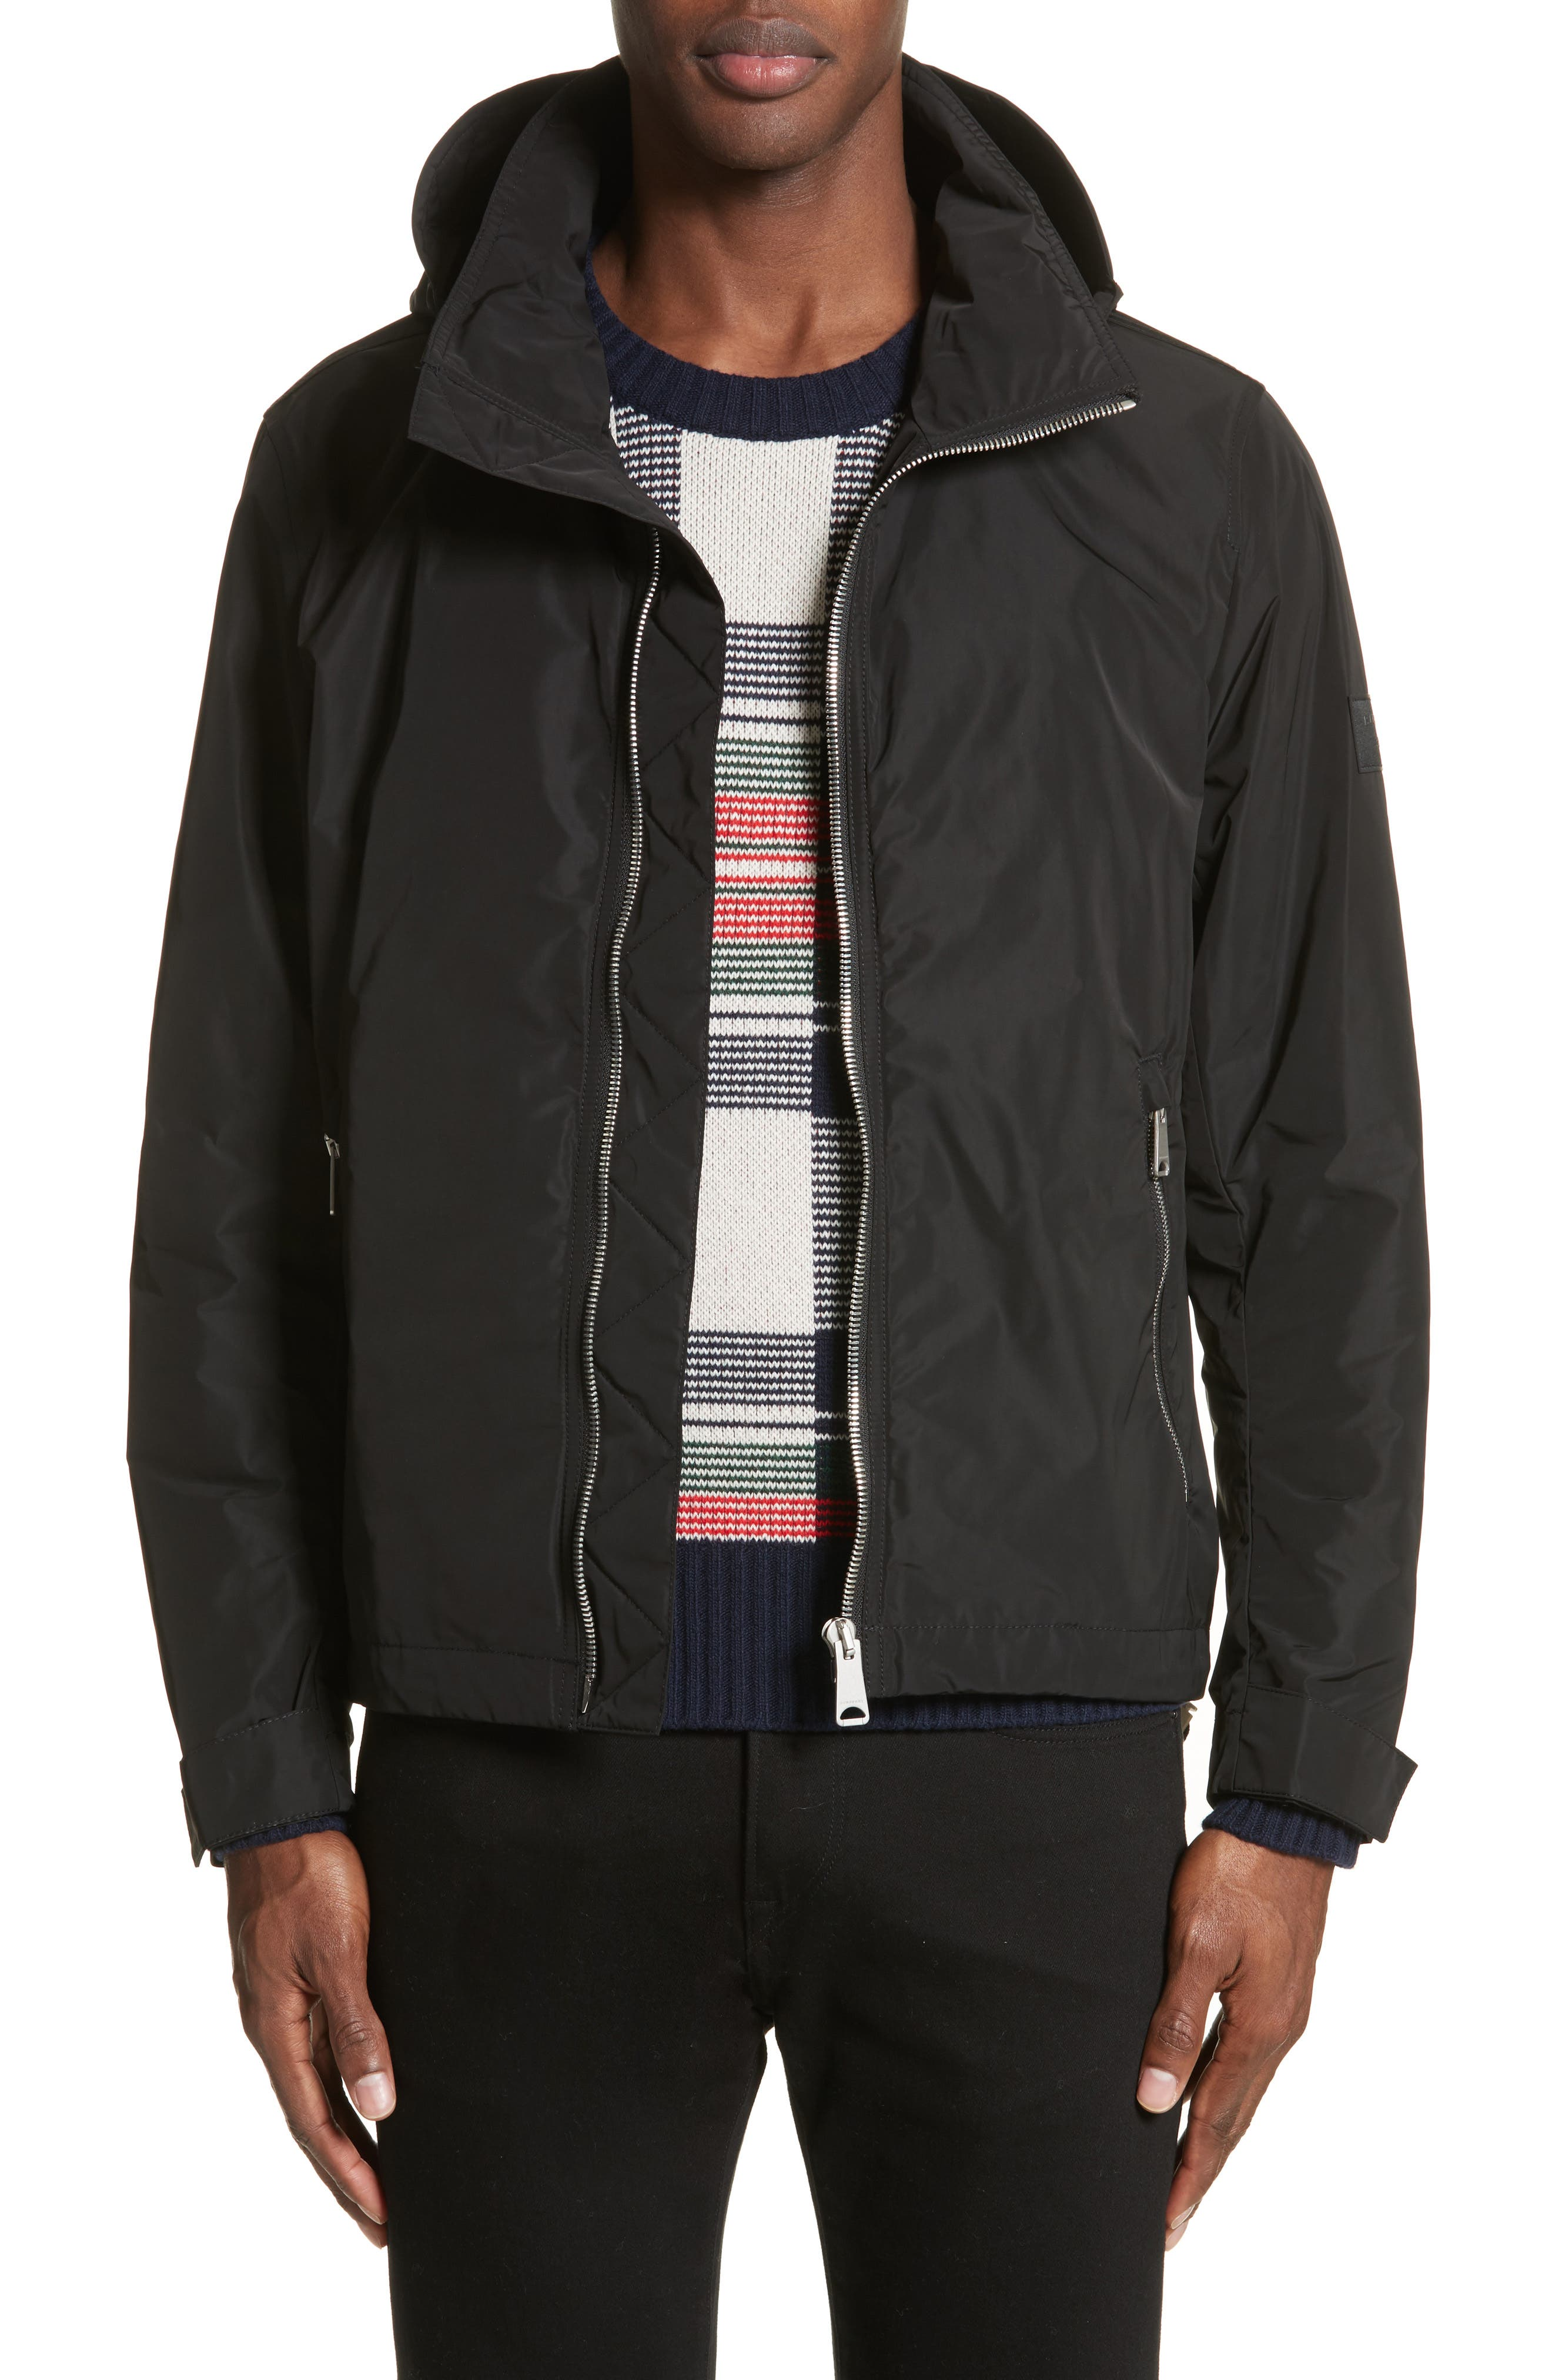 Hedley Stand Collar Jacket,                         Main,                         color, Black